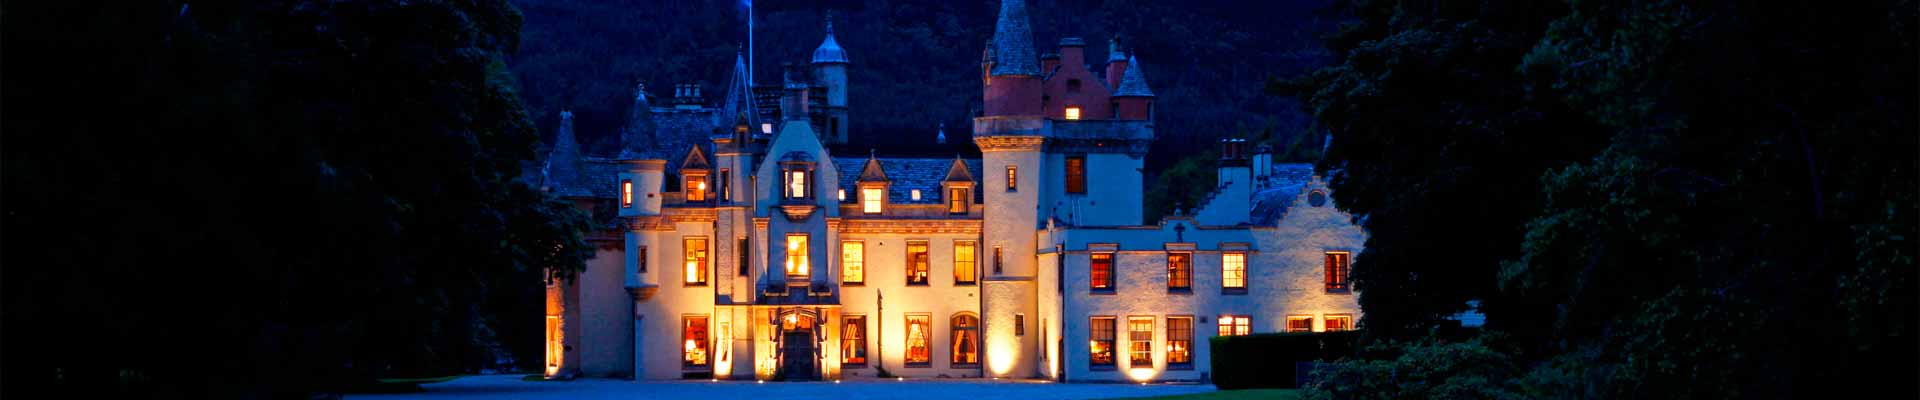 Photo of Aldourie Castle at night